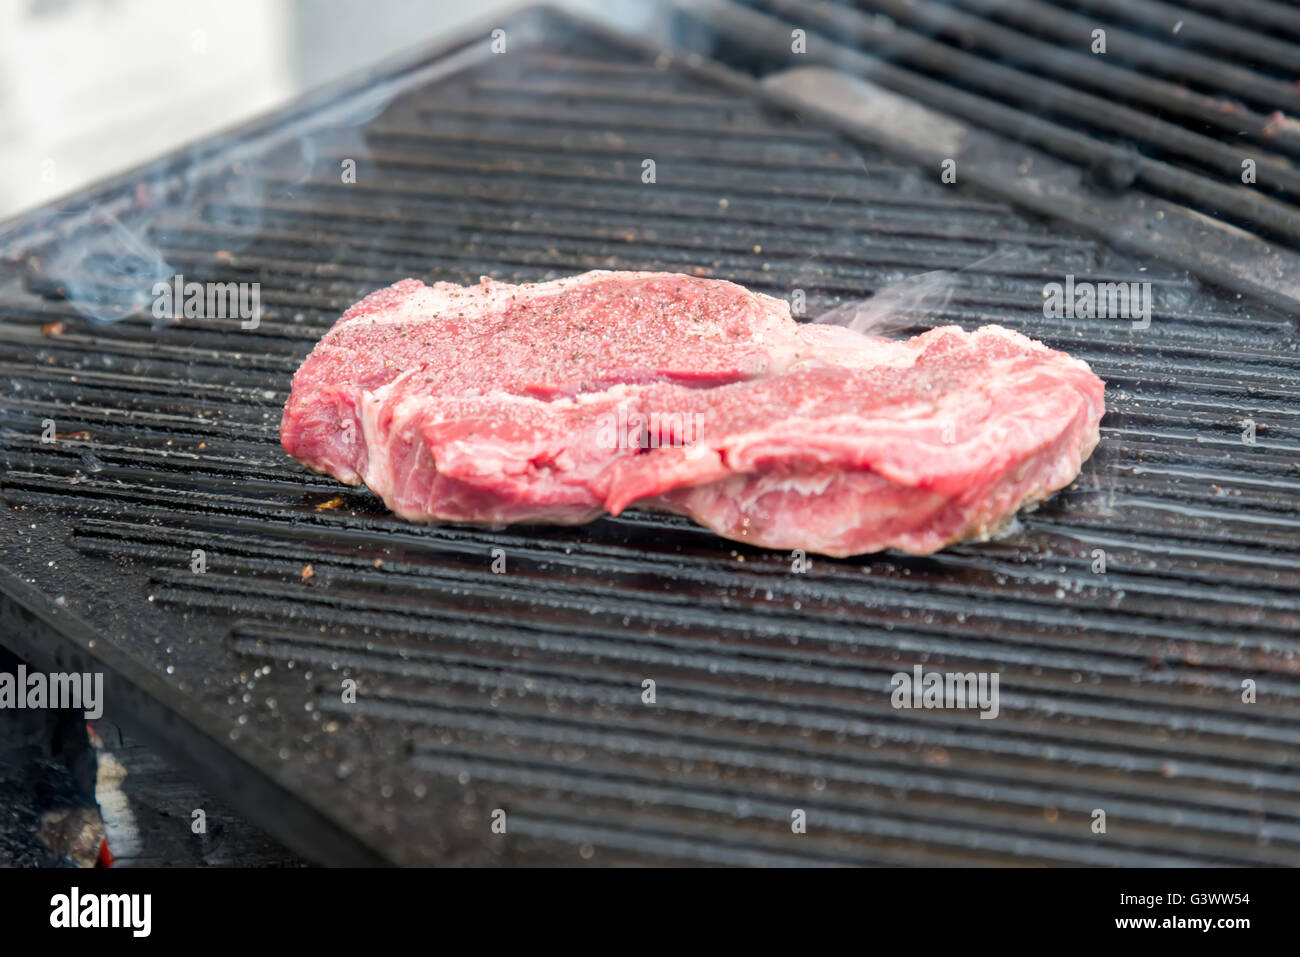 the raw steak with spices on metal grill - Stock Image